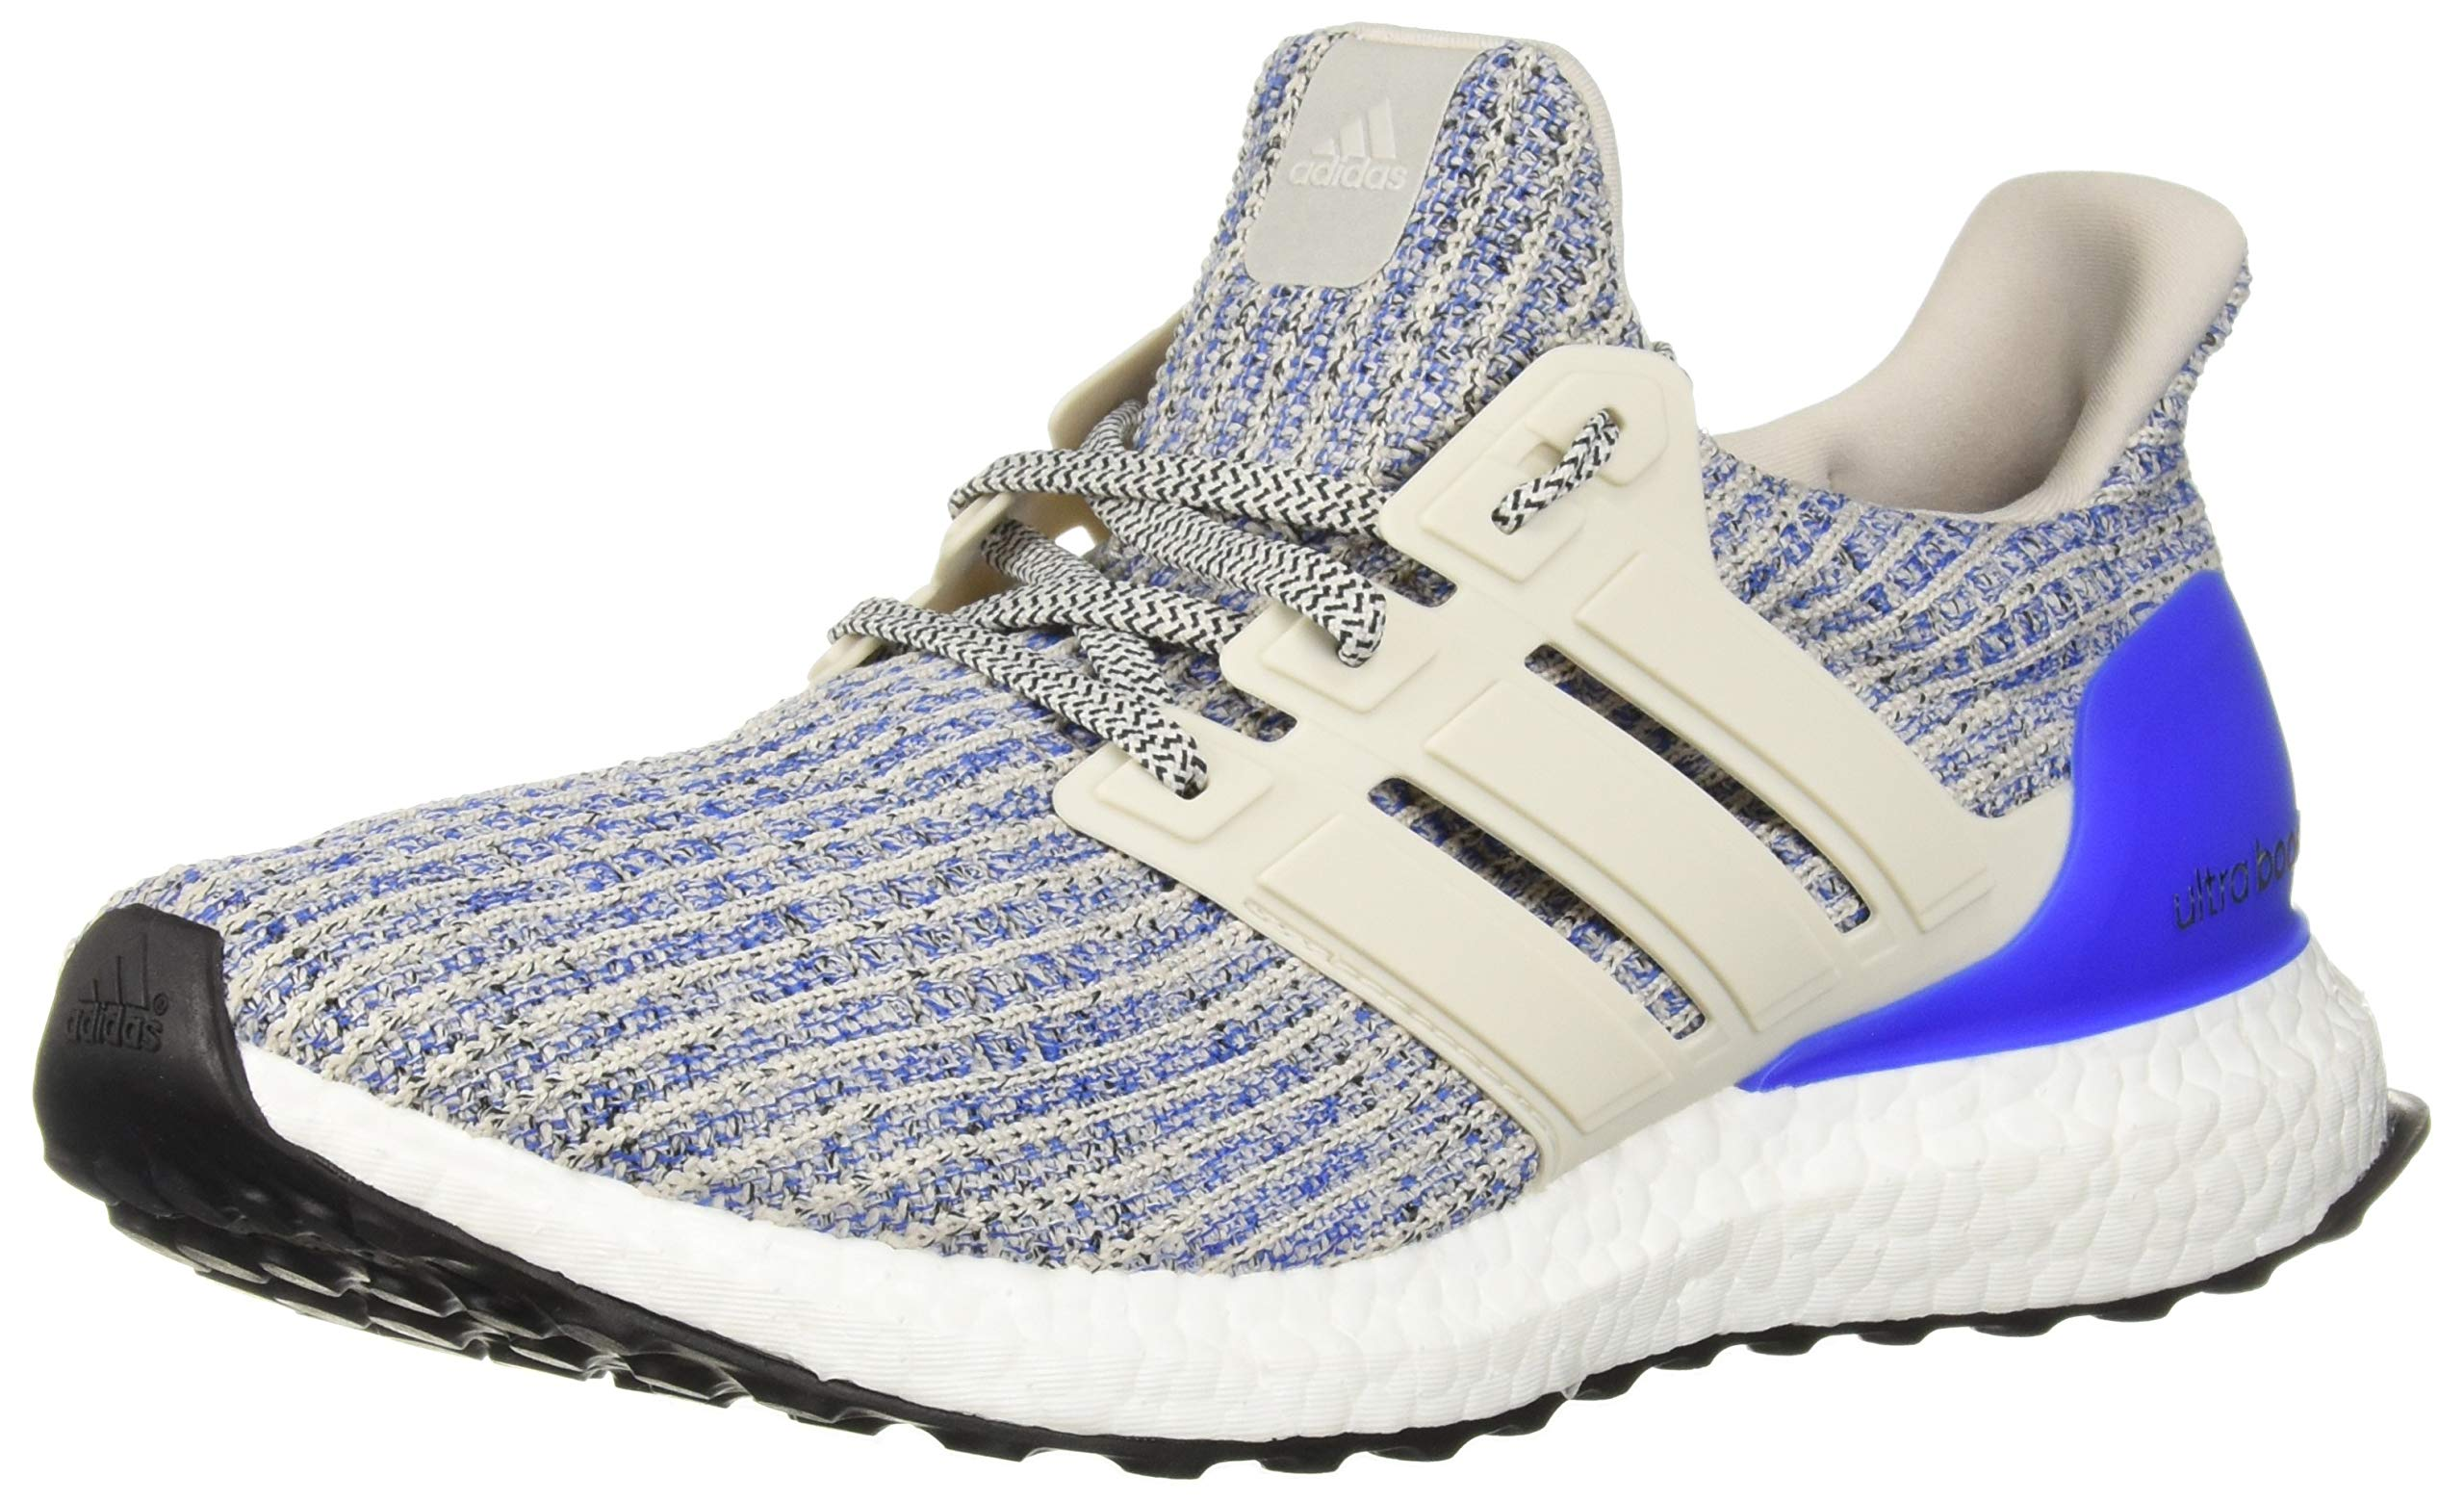 premium selection 3c7a5 15d4e adidas Ultraboost 4.0 Shoe - Men's Running -